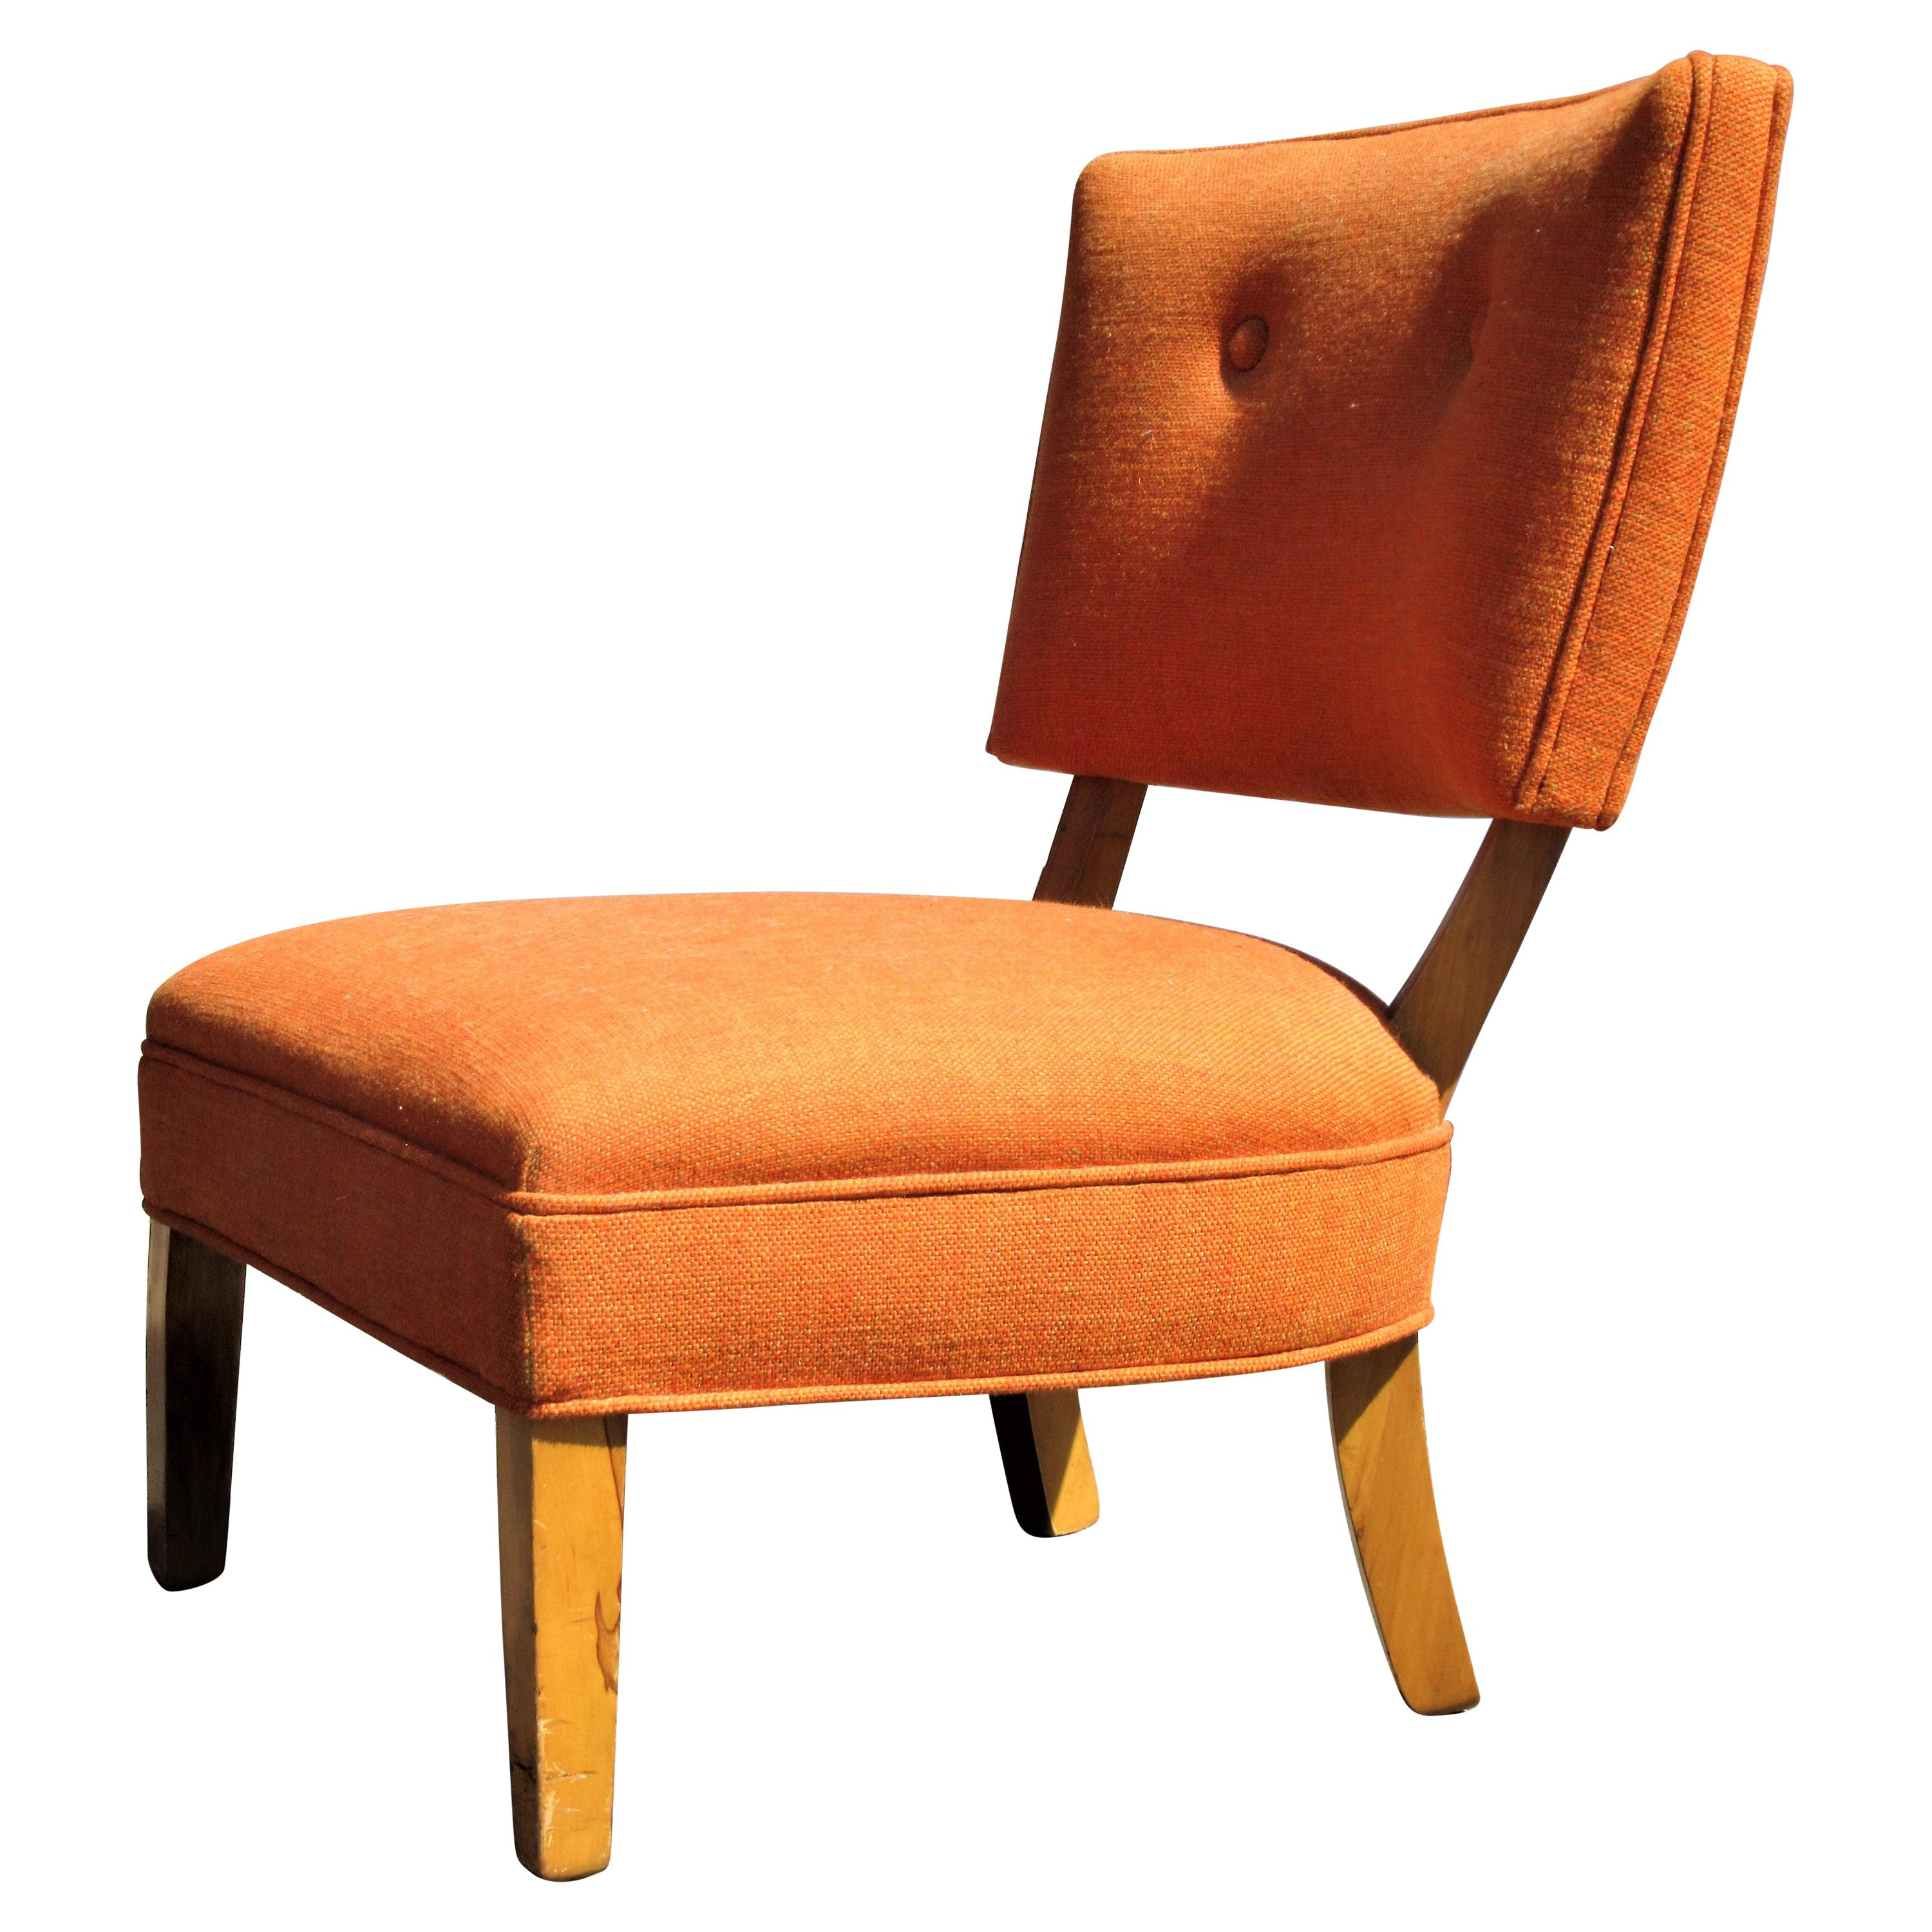 Low Slipper Lounge Chair in the style of William Haines